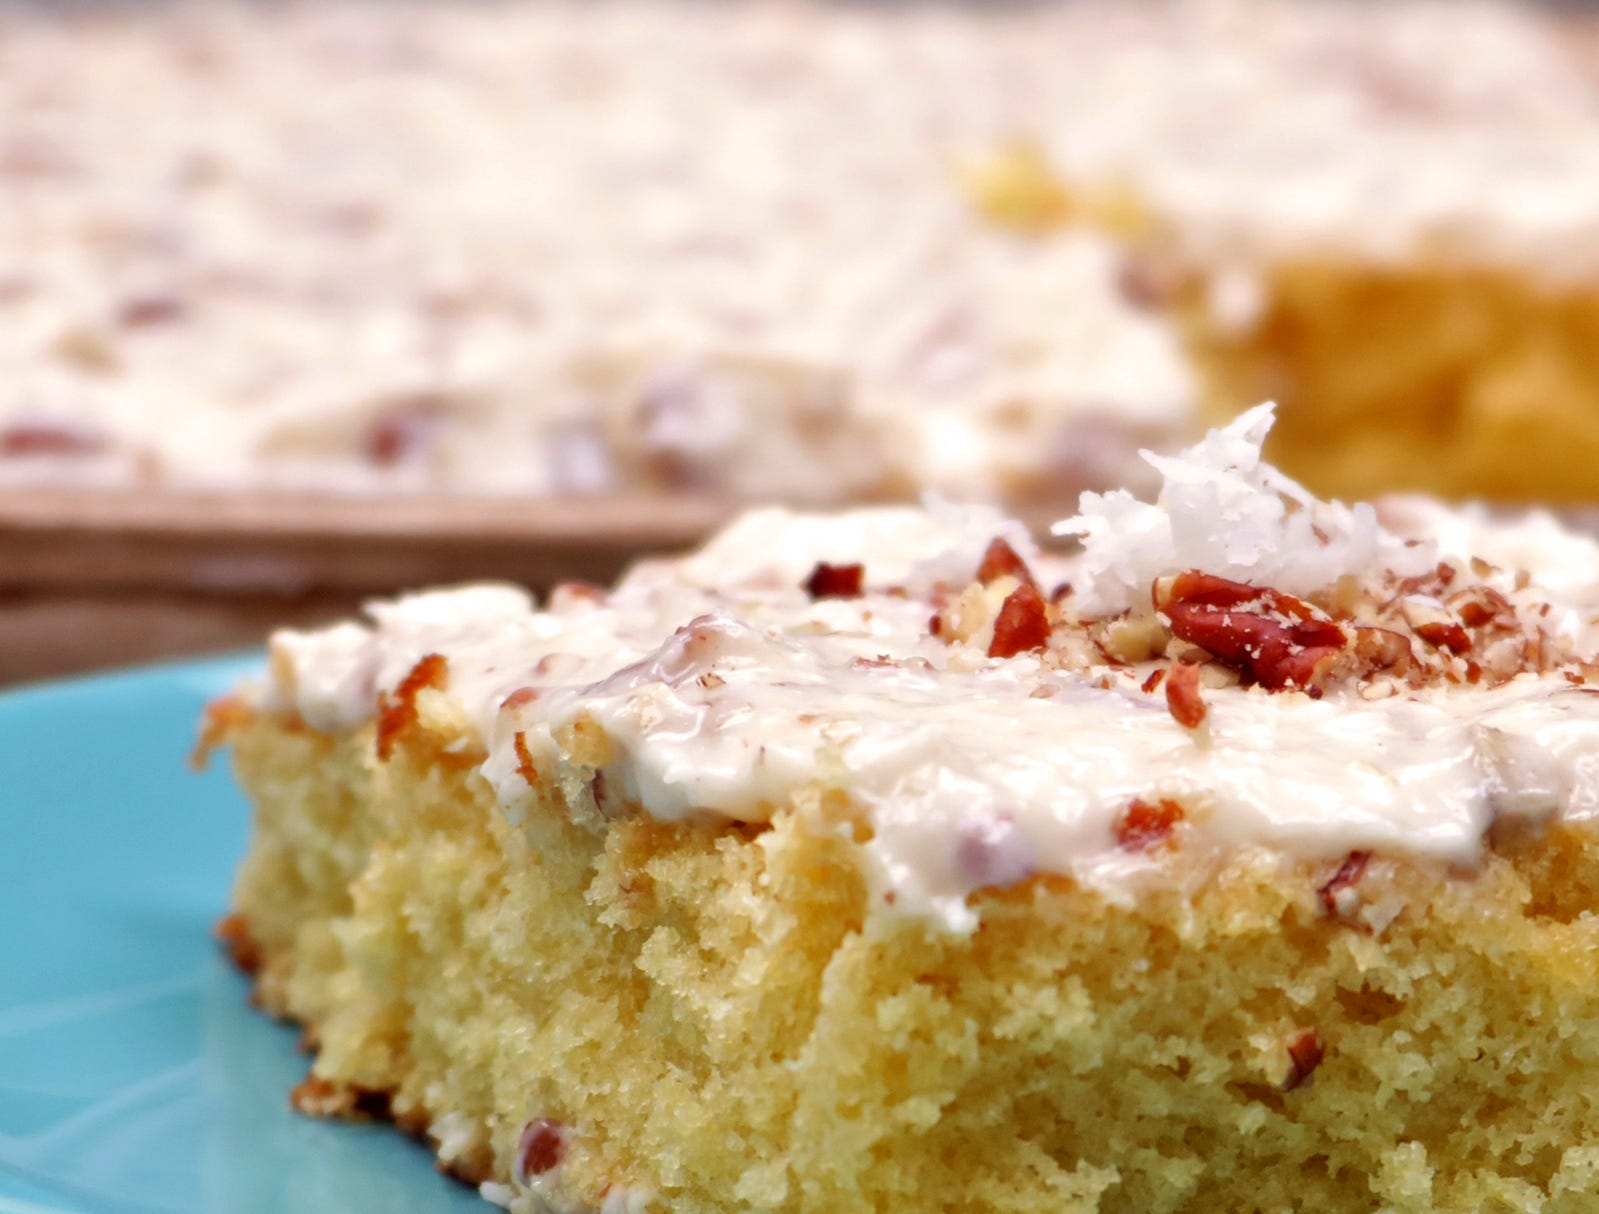 Think you can make heavenly cakes only from powdered mixes in cardboard boxes and top them only with frosting sold in round plastic tubs? This Italian cream sheet cake recipe will prove you wrong.